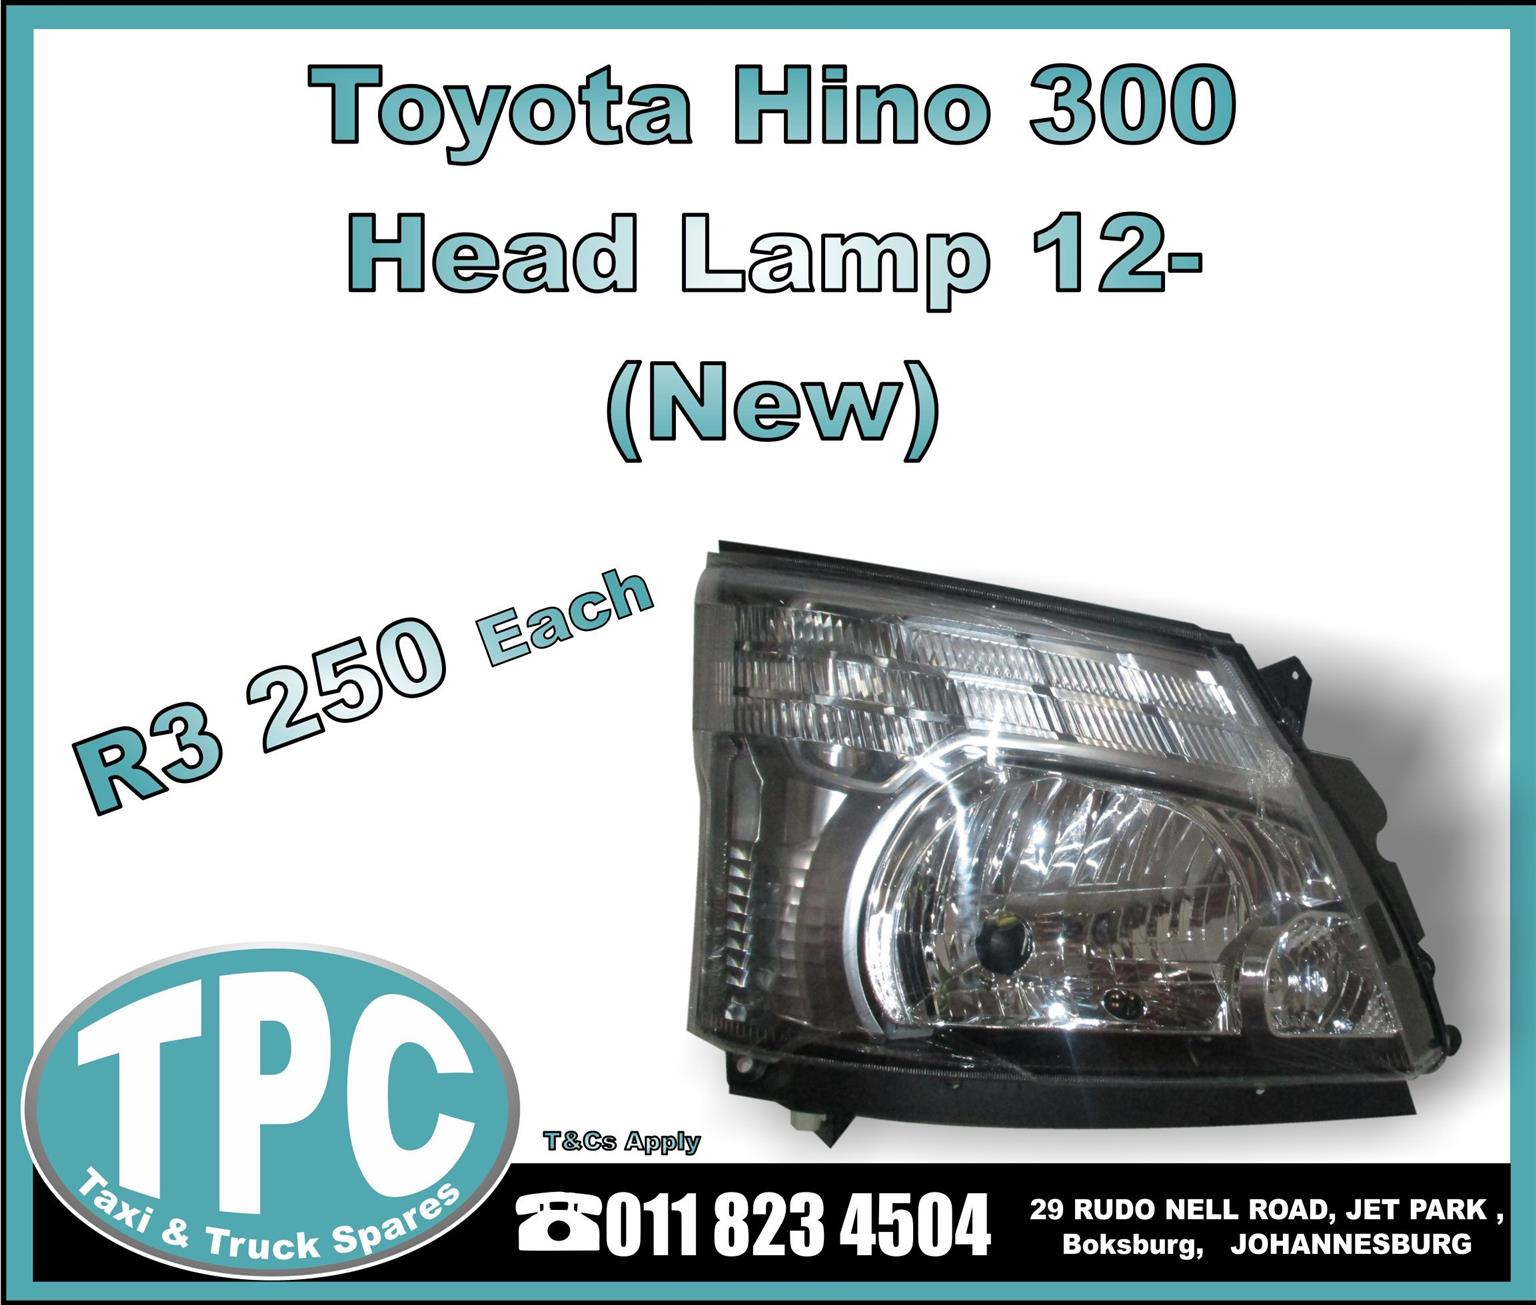 Toyota Hino 300 Head Lamp 12- - New Replacement Truck Parts - TPC.